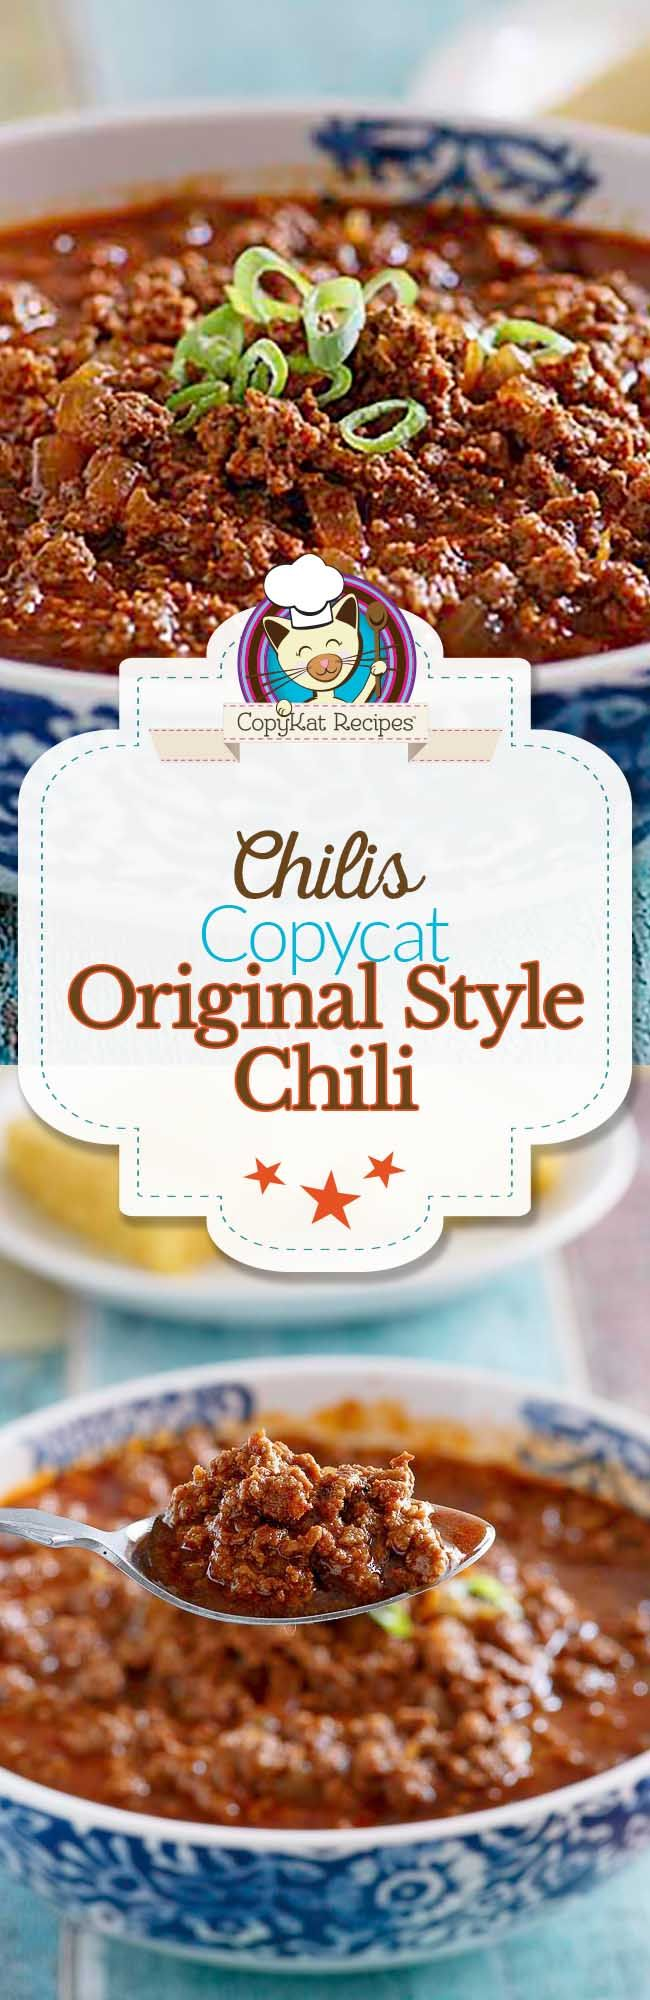 Enjoy chilis original style chili at home with this easy copycat recipe.